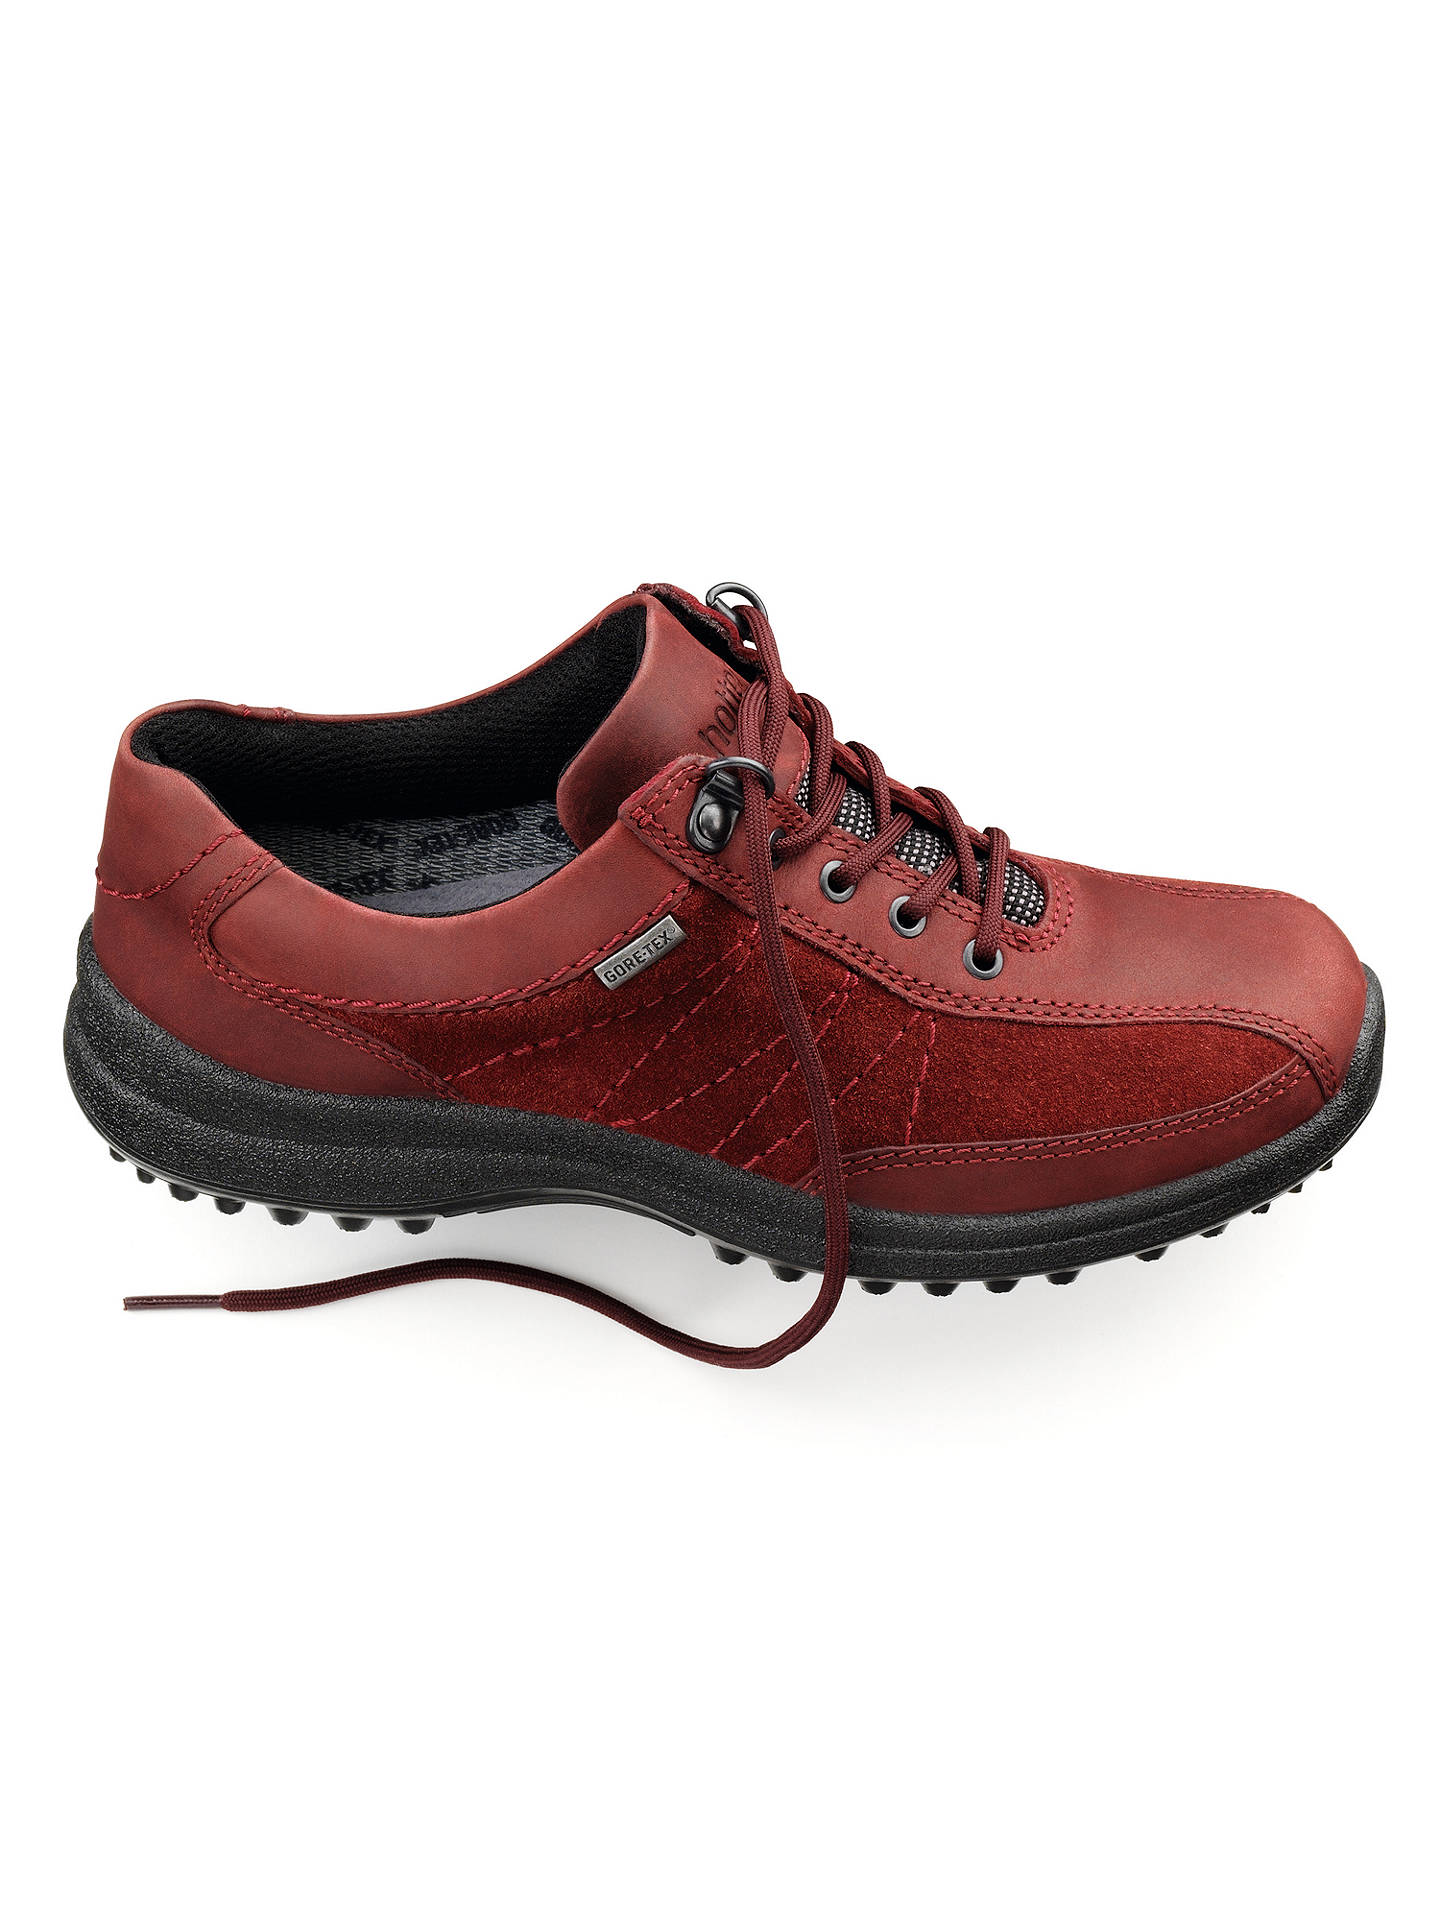 4d2368e4ea8 Hotter Made in England Mist Leather Waterproof Shoes at John Lewis ...